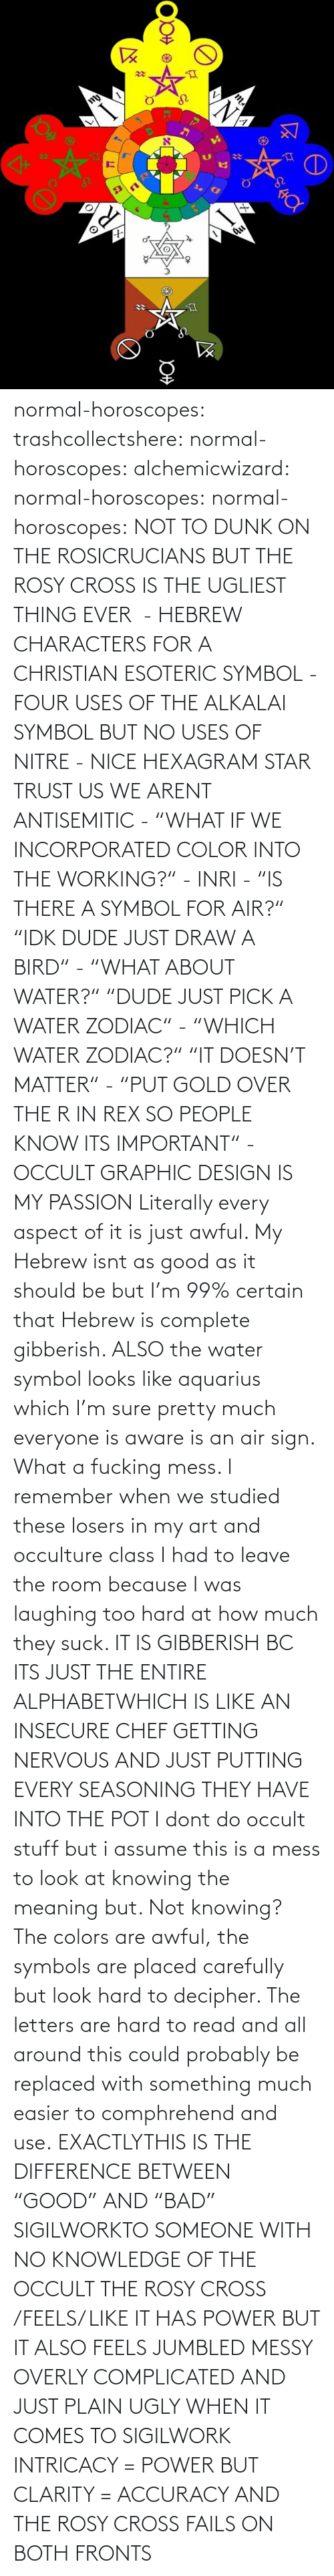 "Easier: normal-horoscopes:  trashcollectshere: normal-horoscopes:   alchemicwizard:  normal-horoscopes:  normal-horoscopes: NOT TO DUNK ON THE ROSICRUCIANS BUT THE ROSY CROSS IS THE UGLIEST THING EVER  - HEBREW CHARACTERS FOR A CHRISTIAN ESOTERIC SYMBOL - FOUR USES OF THE ALKALAI SYMBOL BUT NO USES OF NITRE - NICE HEXAGRAM STAR TRUST US WE ARENT ANTISEMITIC - ""WHAT IF WE INCORPORATED COLOR INTO THE WORKING?"" - INRI - ""IS THERE A SYMBOL FOR AIR?"" ""IDK DUDE JUST DRAW A BIRD"" - ""WHAT ABOUT WATER?"" ""DUDE JUST PICK A WATER ZODIAC"" - ""WHICH WATER ZODIAC?"" ""IT DOESN'T MATTER"" - ""PUT GOLD OVER THE R IN REX SO PEOPLE KNOW ITS IMPORTANT"" - OCCULT GRAPHIC DESIGN IS MY PASSION  Literally every aspect of it is just awful. My Hebrew isnt as good as it should be but I'm 99% certain that Hebrew is complete gibberish.  ALSO the water symbol looks like aquarius which I'm sure pretty much everyone is aware is an air sign. What a fucking mess.  I remember when we studied these losers in my art and occulture class I had to leave the room because I was laughing too hard at how much they suck.   IT IS GIBBERISH BC ITS JUST THE ENTIRE ALPHABETWHICH IS LIKE AN INSECURE CHEF GETTING NERVOUS AND JUST PUTTING EVERY SEASONING THEY HAVE INTO THE POT     I dont do occult stuff but i assume this is a mess to look at knowing the meaning but. Not knowing? The colors are awful, the symbols are placed carefully but look hard to decipher. The letters are hard to read and all around this could probably be replaced with something much easier to comphrehend and use.  EXACTLYTHIS IS THE DIFFERENCE BETWEEN ""GOOD"" AND ""BAD"" SIGILWORKTO SOMEONE WITH NO KNOWLEDGE OF THE OCCULT THE ROSY CROSS /FEELS/ LIKE IT HAS POWER BUT IT ALSO FEELS JUMBLED MESSY OVERLY COMPLICATED AND JUST PLAIN UGLY WHEN IT COMES TO SIGILWORK INTRICACY = POWER BUT CLARITY = ACCURACY AND THE ROSY CROSS FAILS ON BOTH FRONTS"